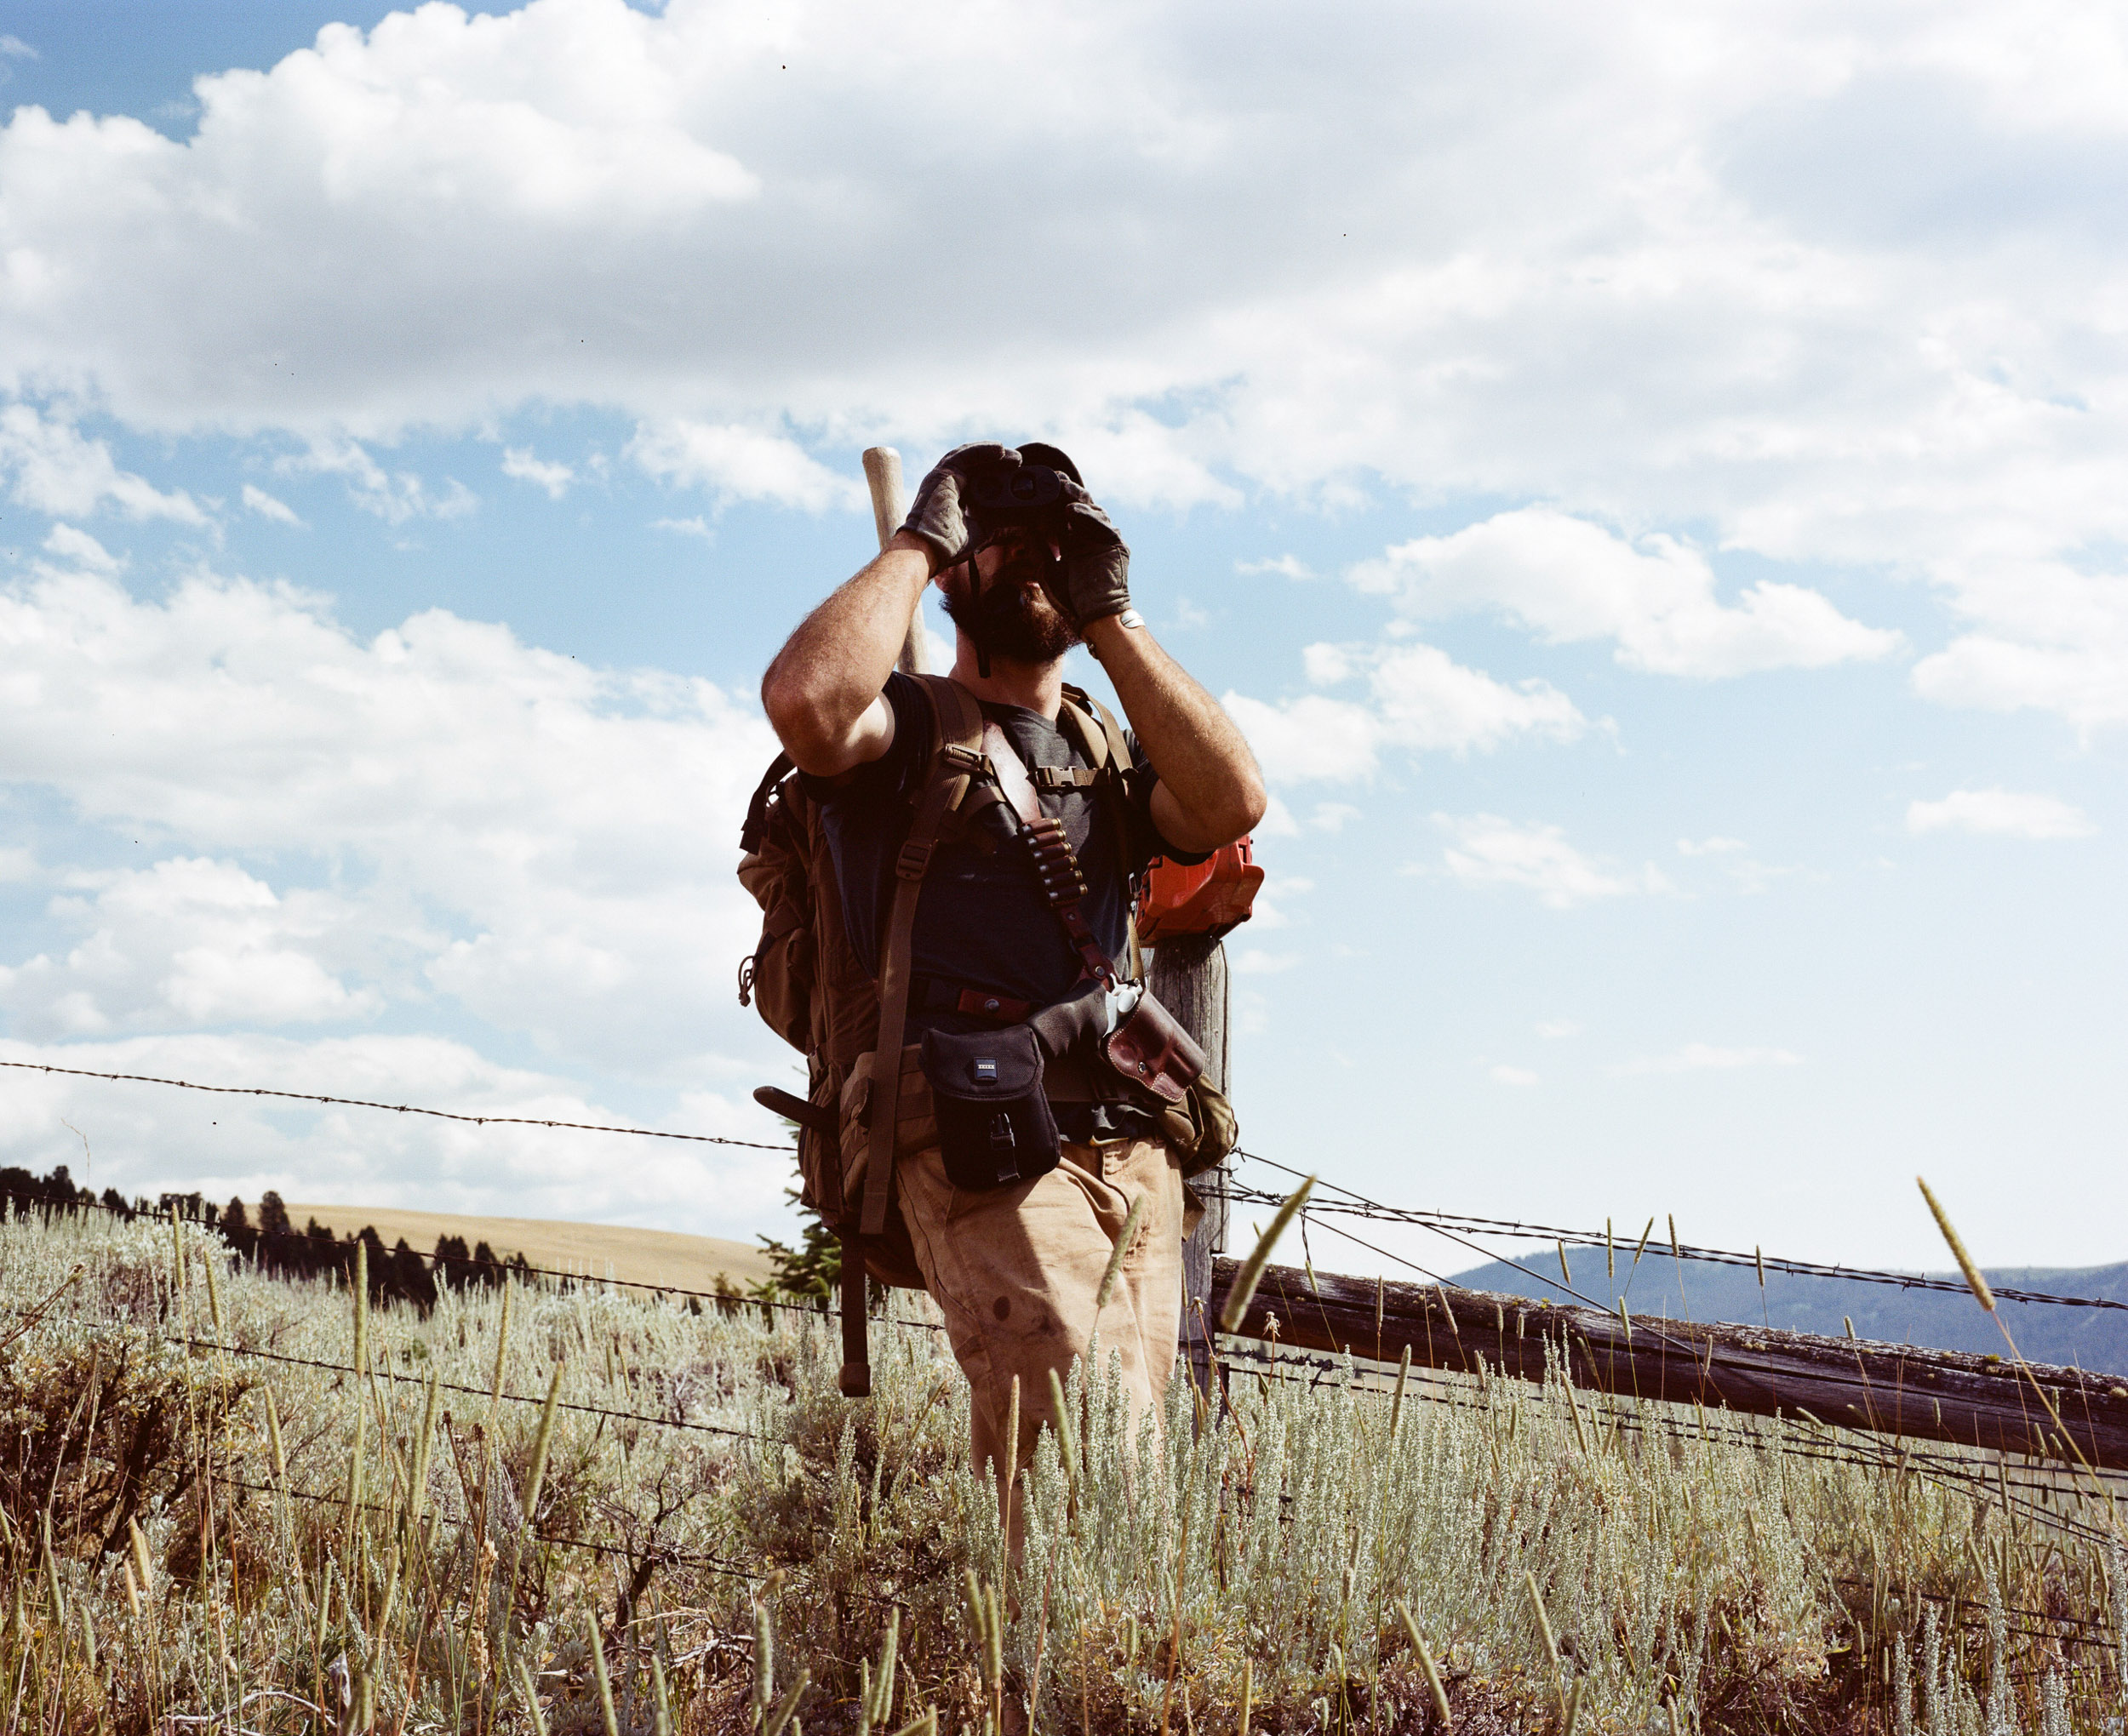 Hiker with binoculars standing in sagebrush, clouds in the background